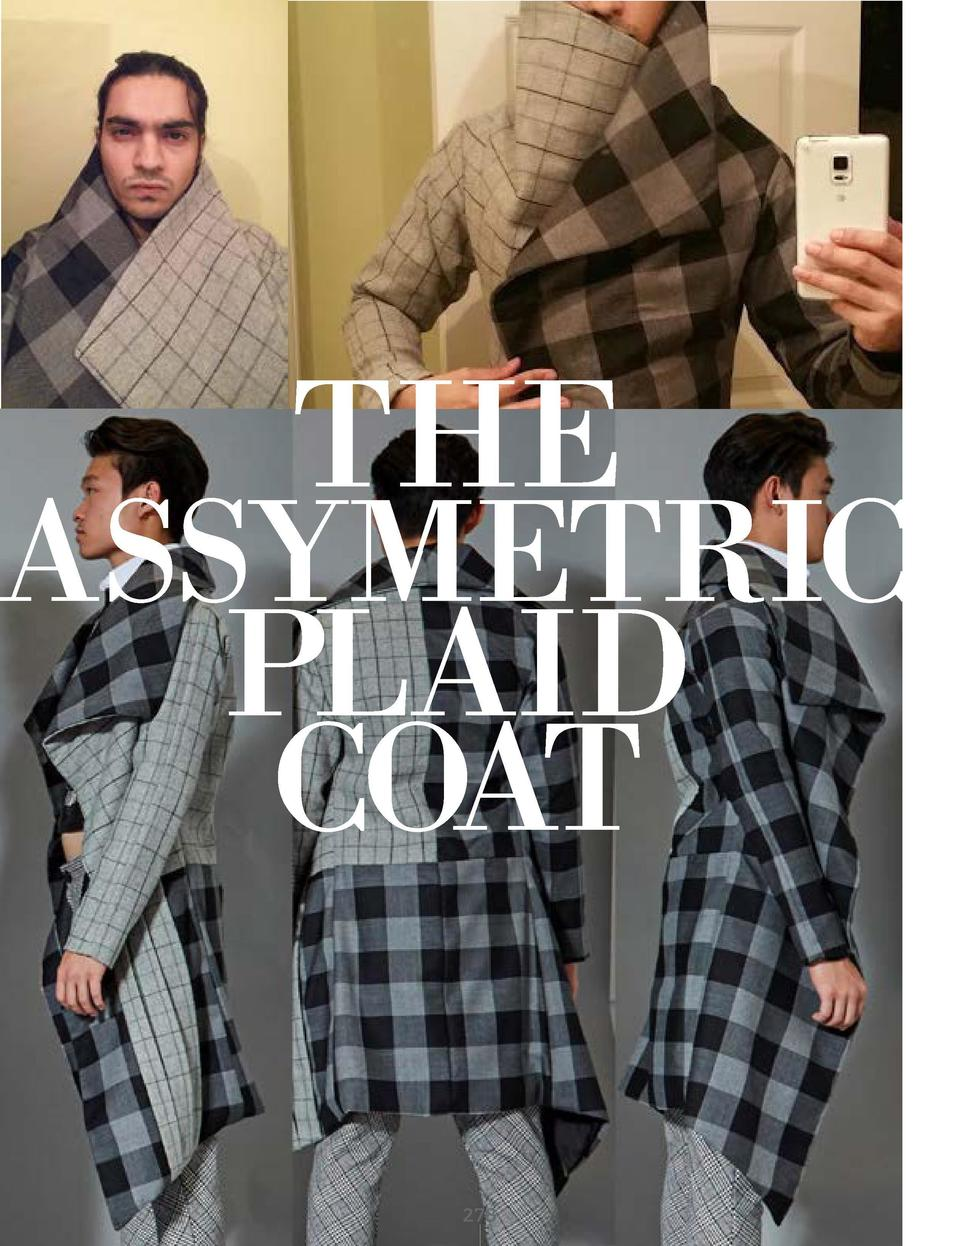 THE ASSYMETRIC PLAID COAT BLACK AND GREY PLAID WOOLEN FABRIC WITH BLACK SATIN LINING       278